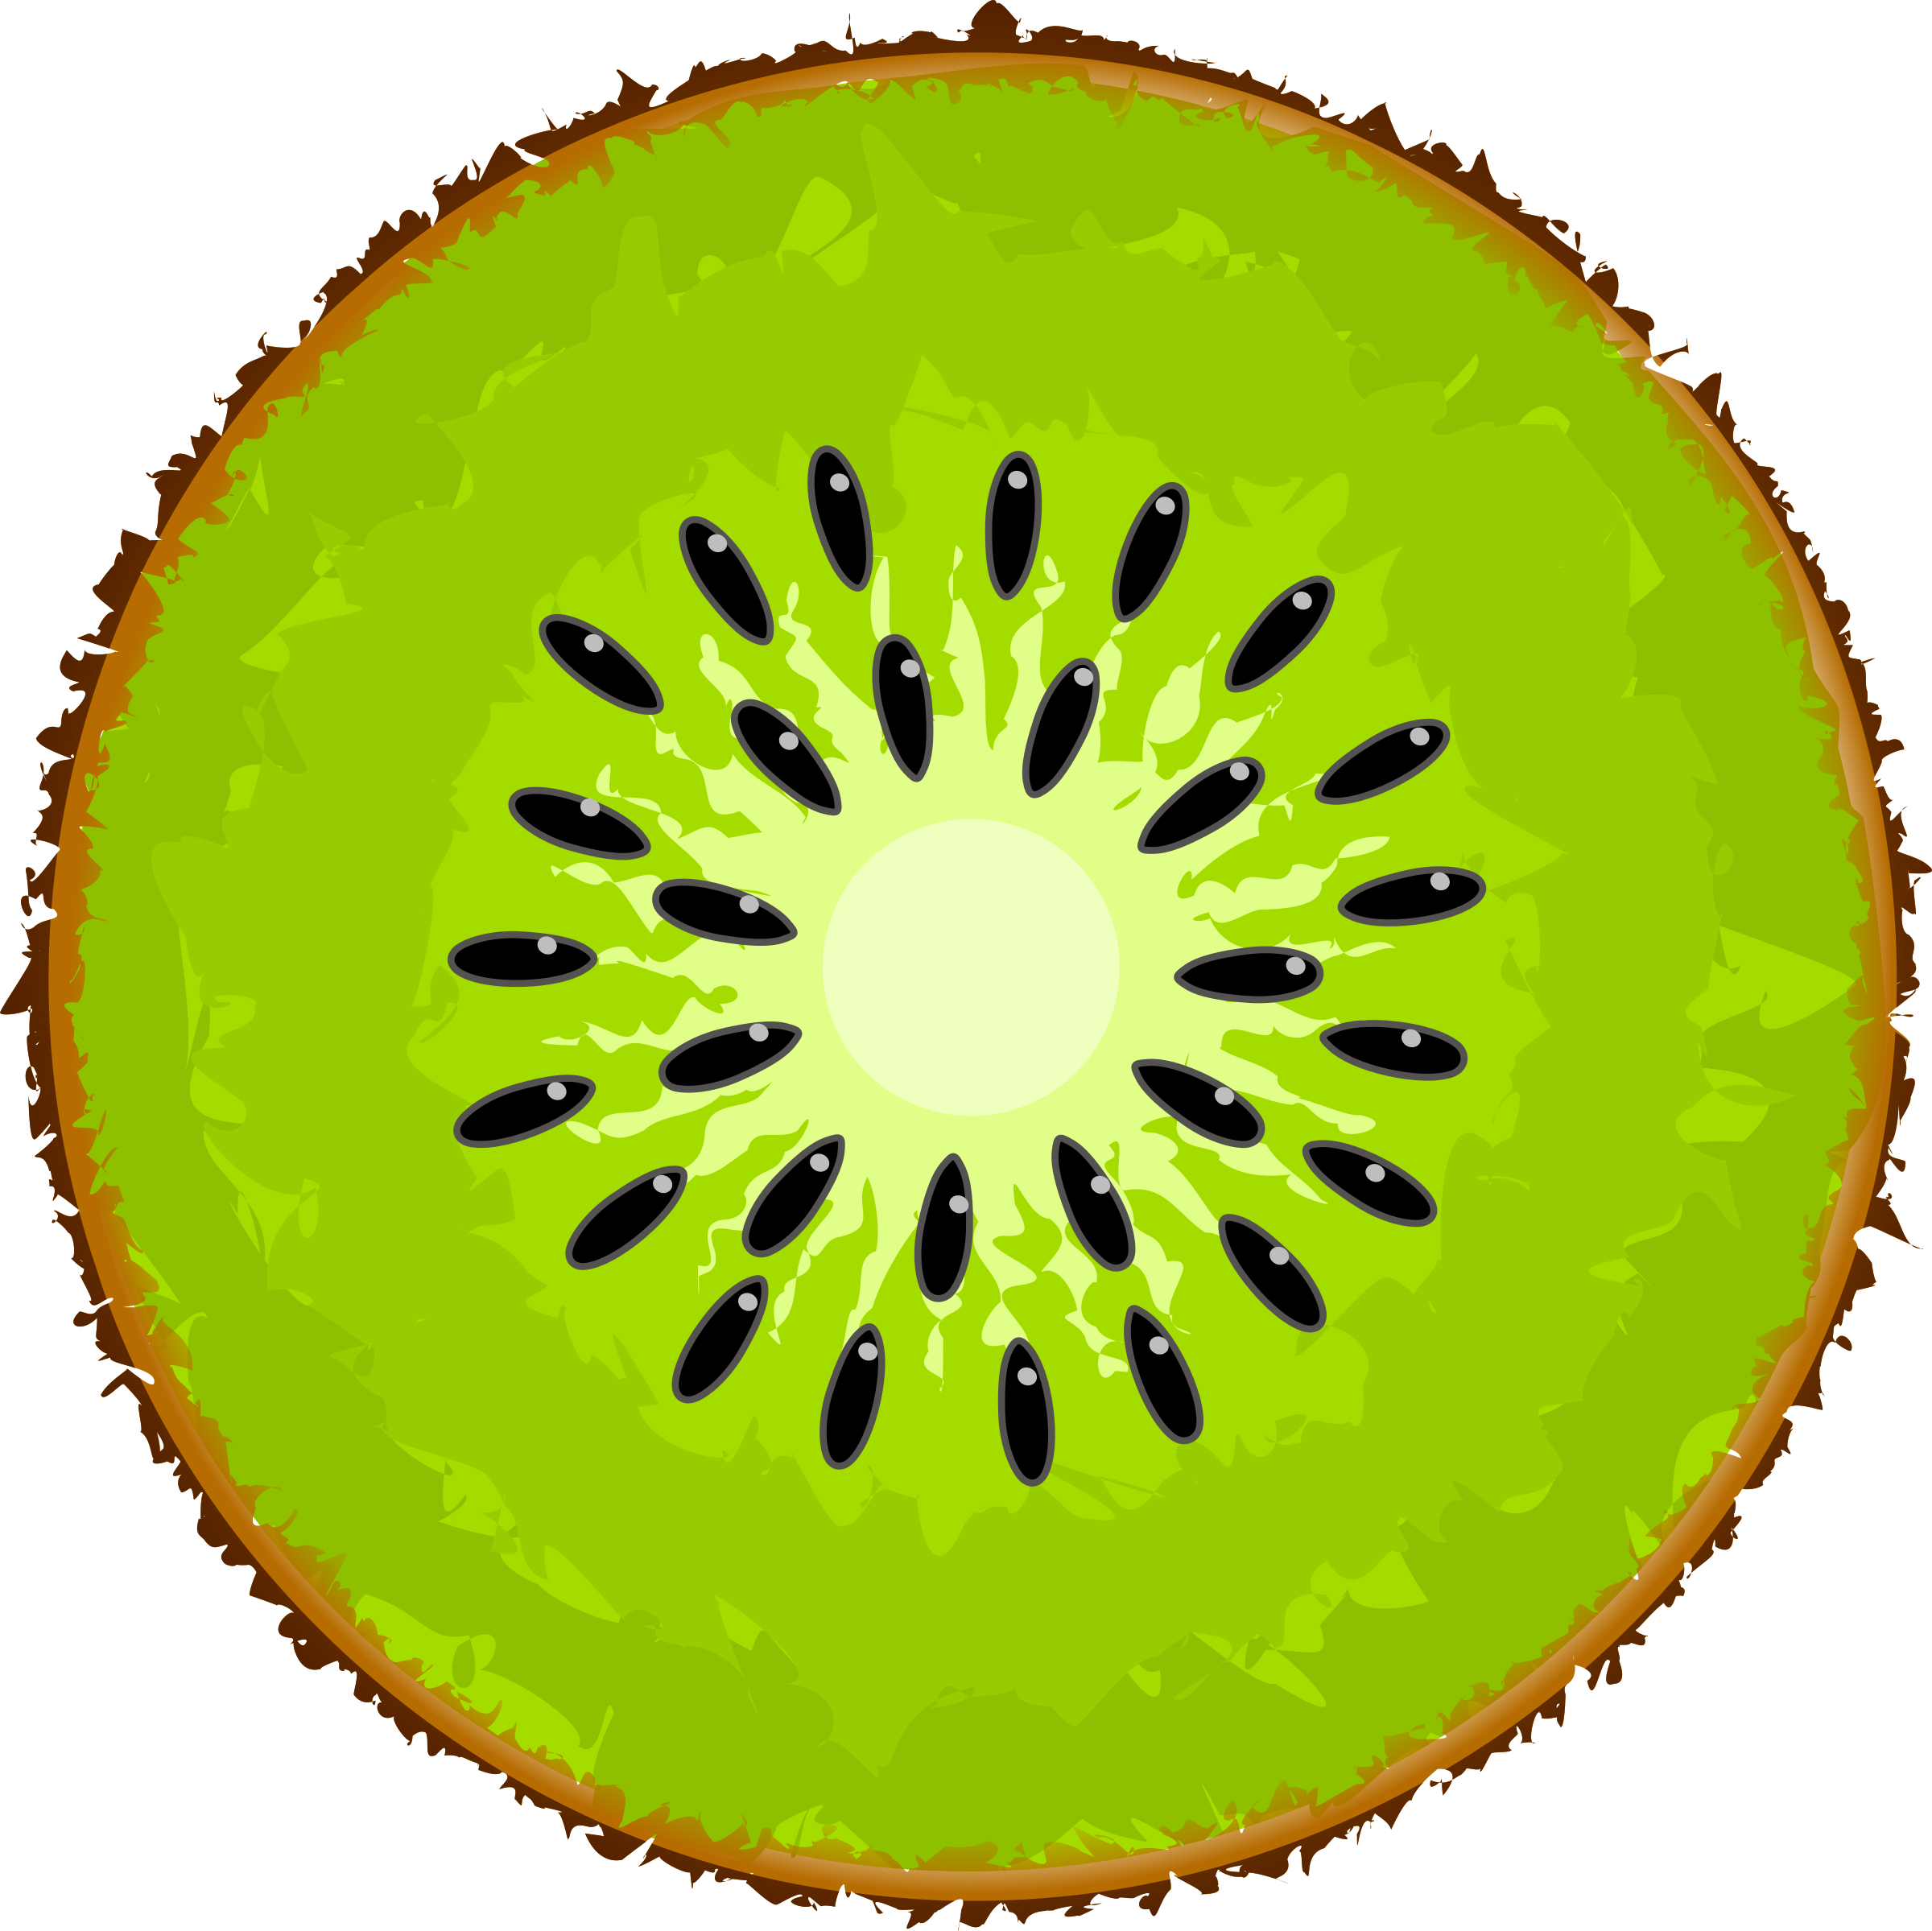 jpg transparent download Logo free on dumielauxepices. Fruit clipart.